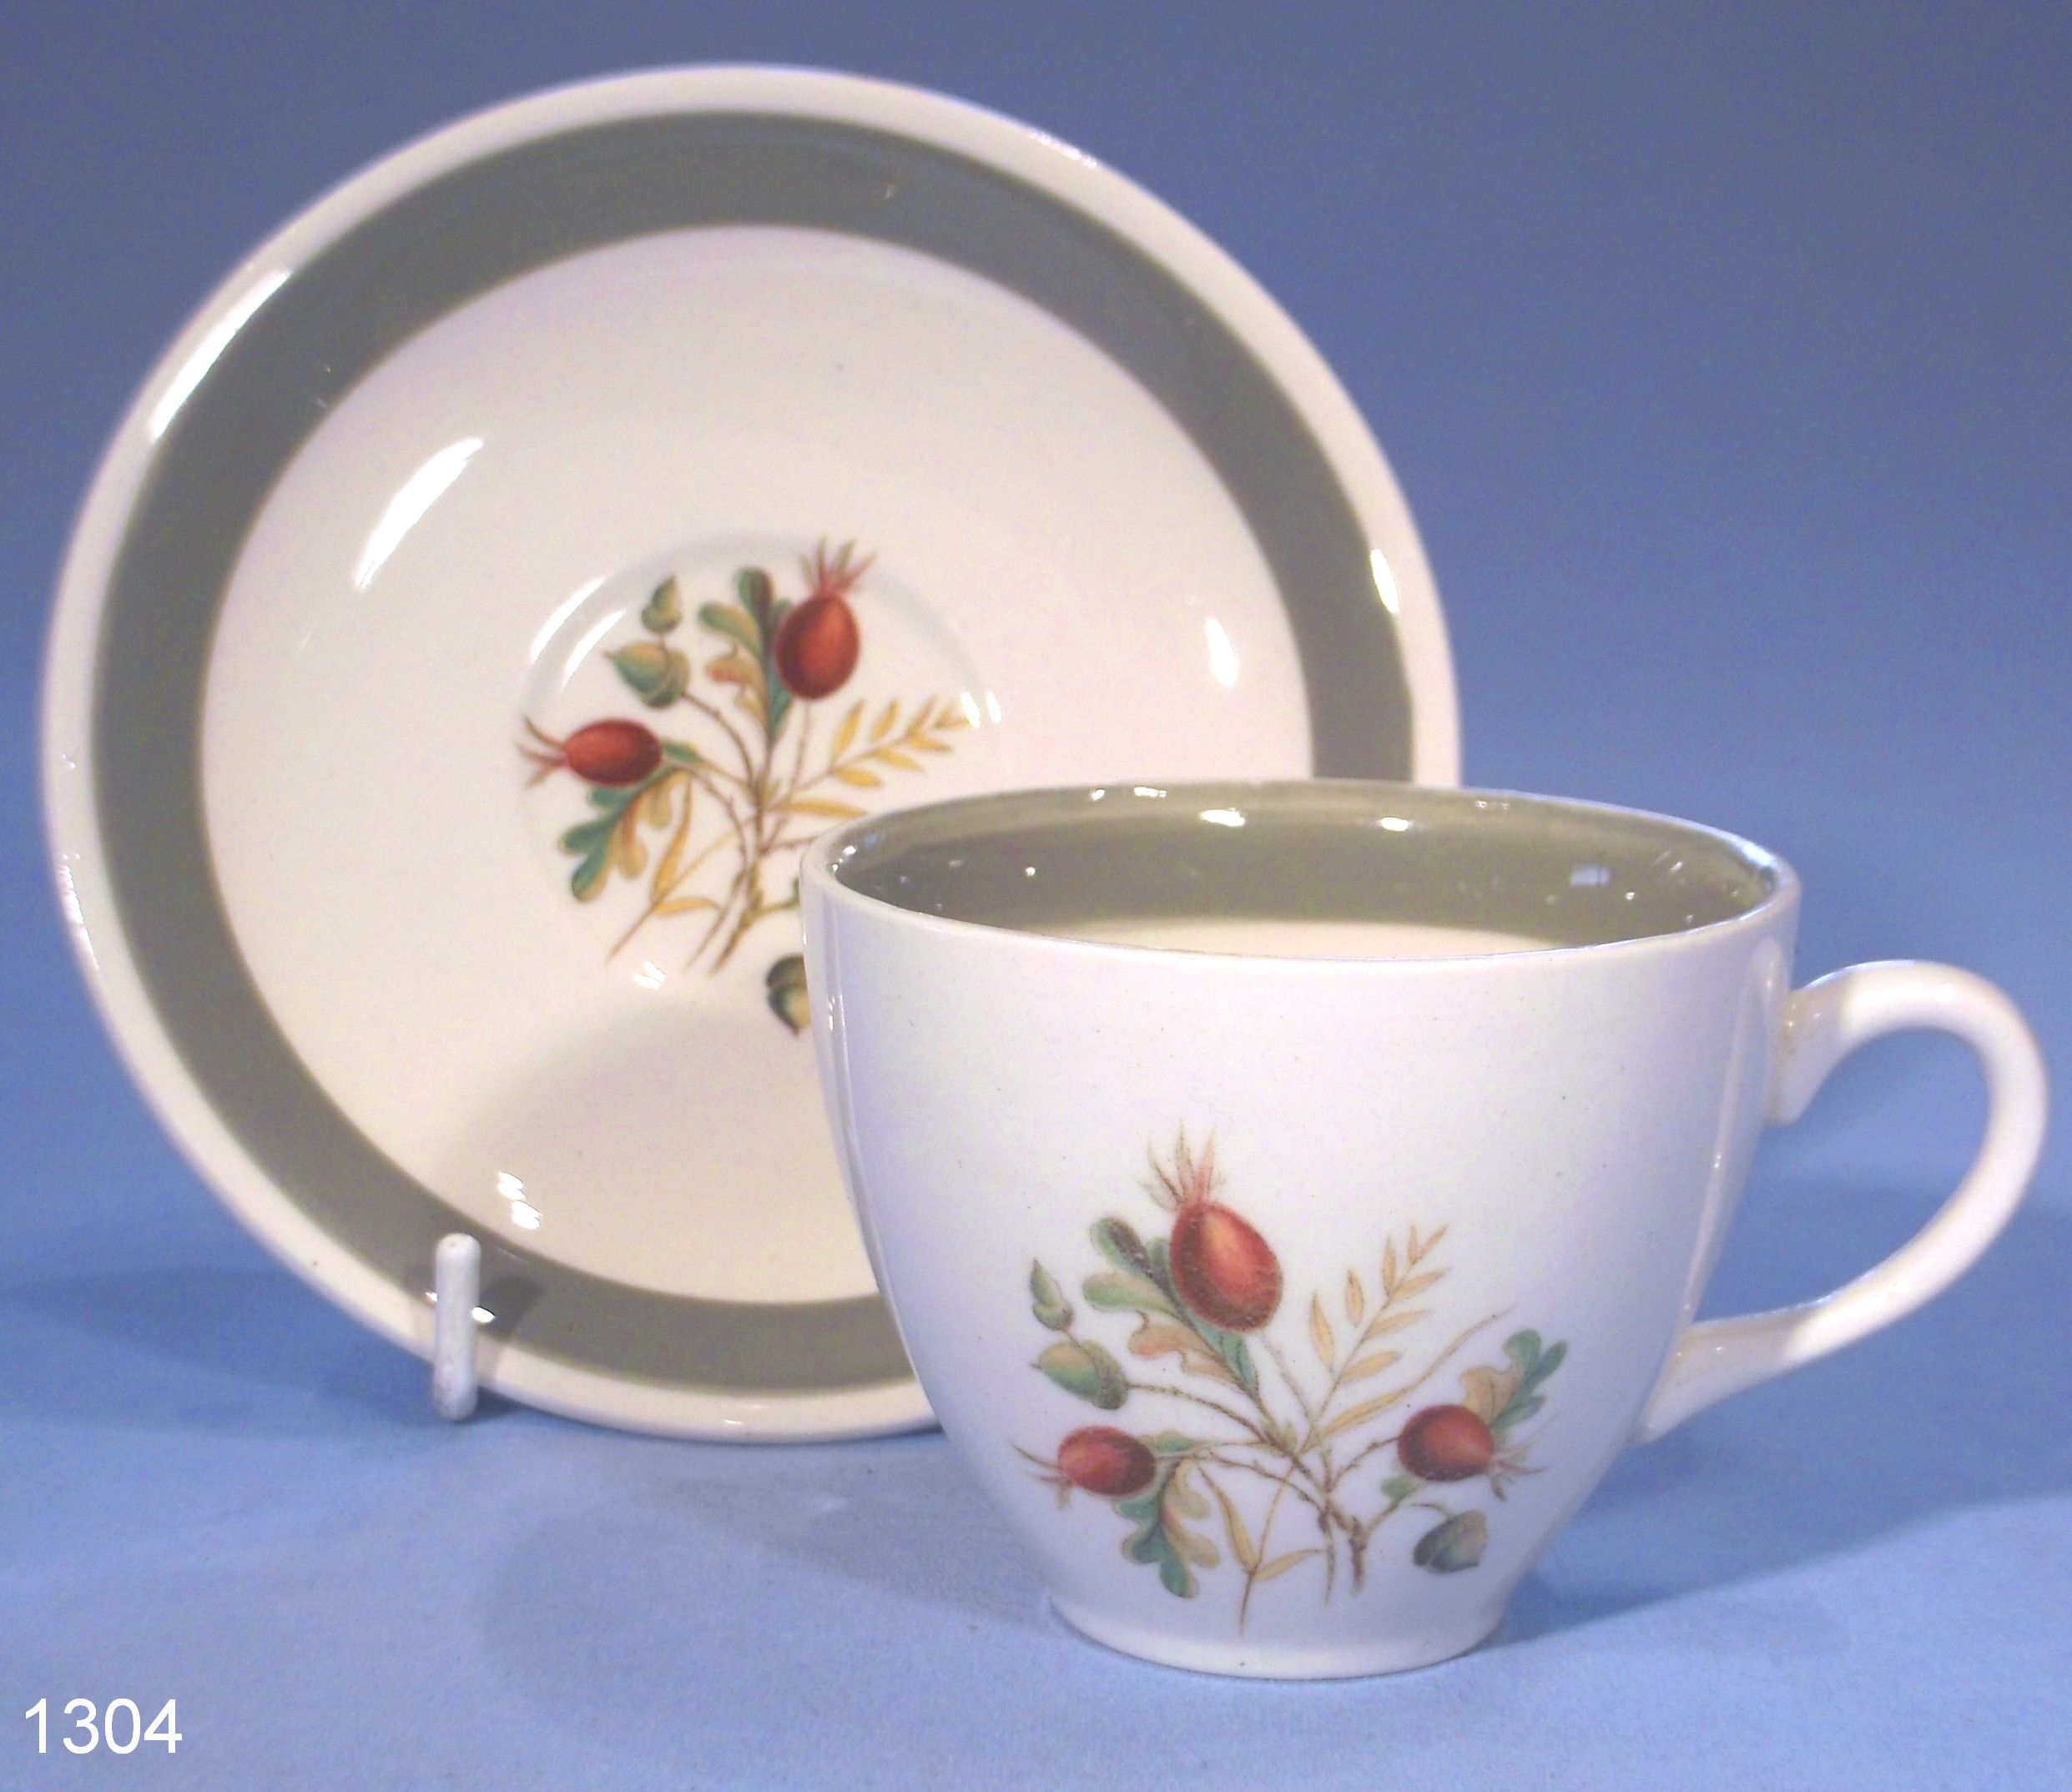 Alfred Meakin Rose Hip Coffee Cup and Saucer  Coffee Cup & Saucer made by  Alfred Meakin in the 1950s-1960s. Rosehip design with sage green border.